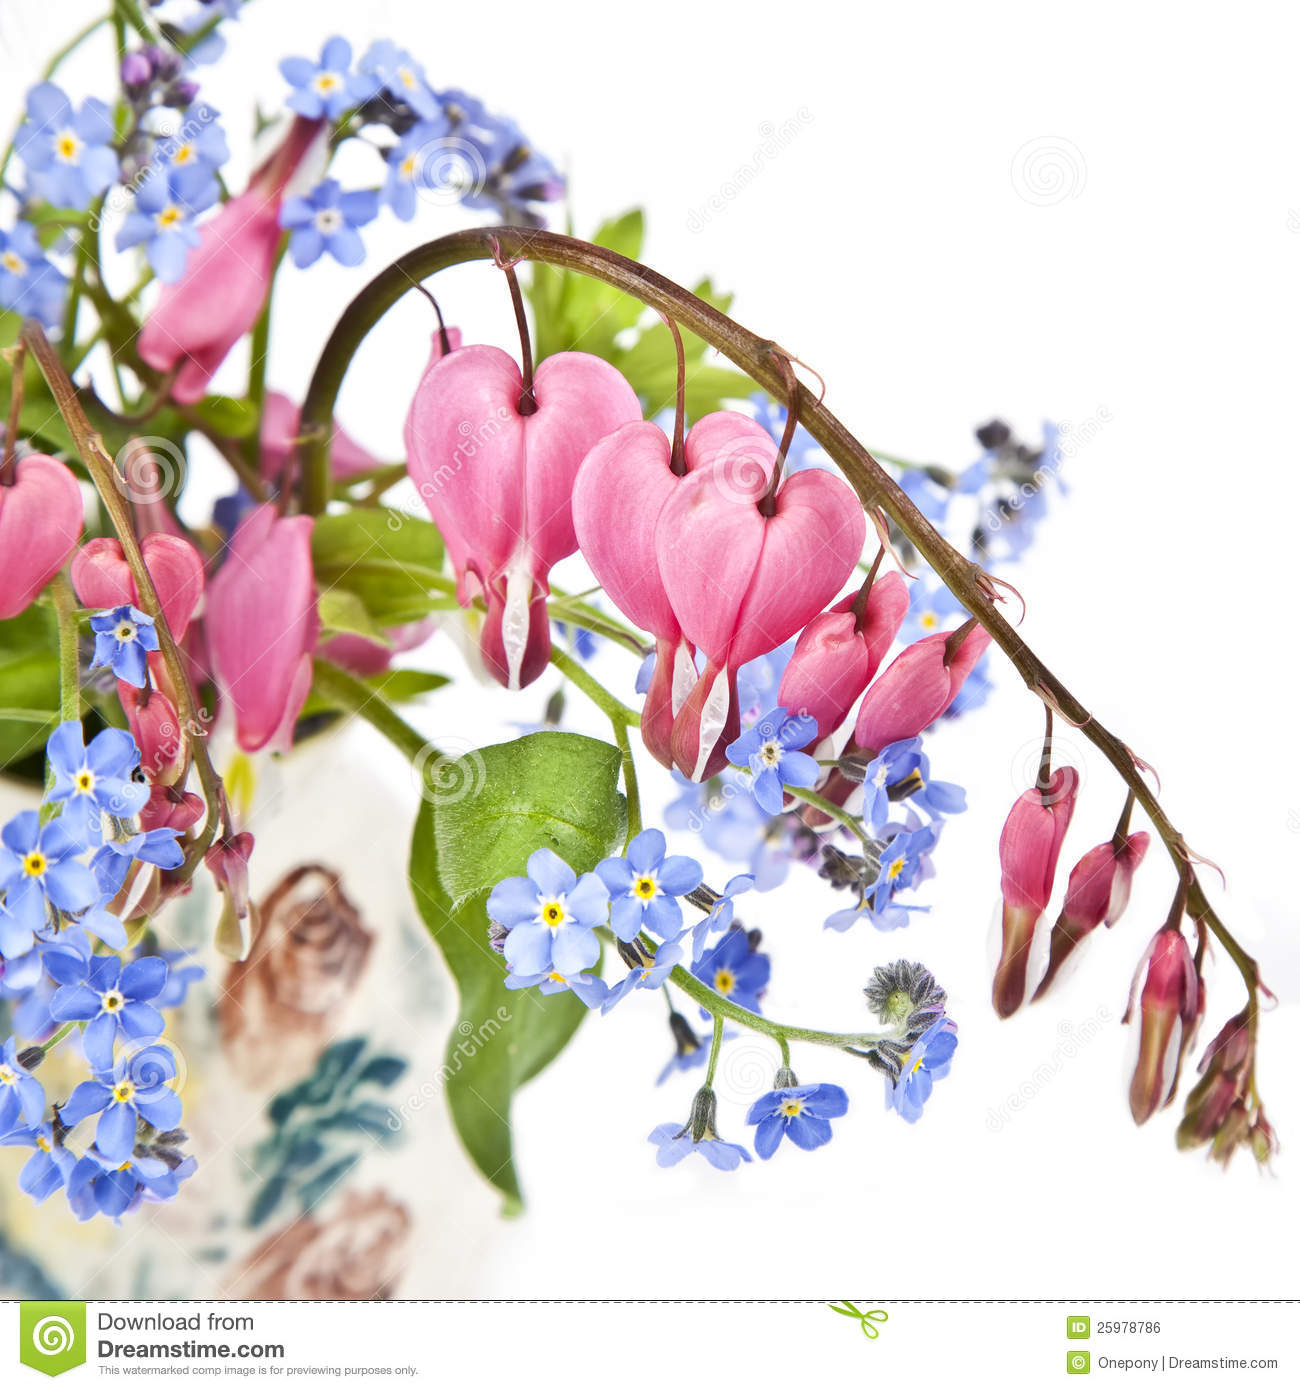 Bleeding heart bouquet stock photo image of pink natural 25978786 bleeding heart bouquet izmirmasajfo